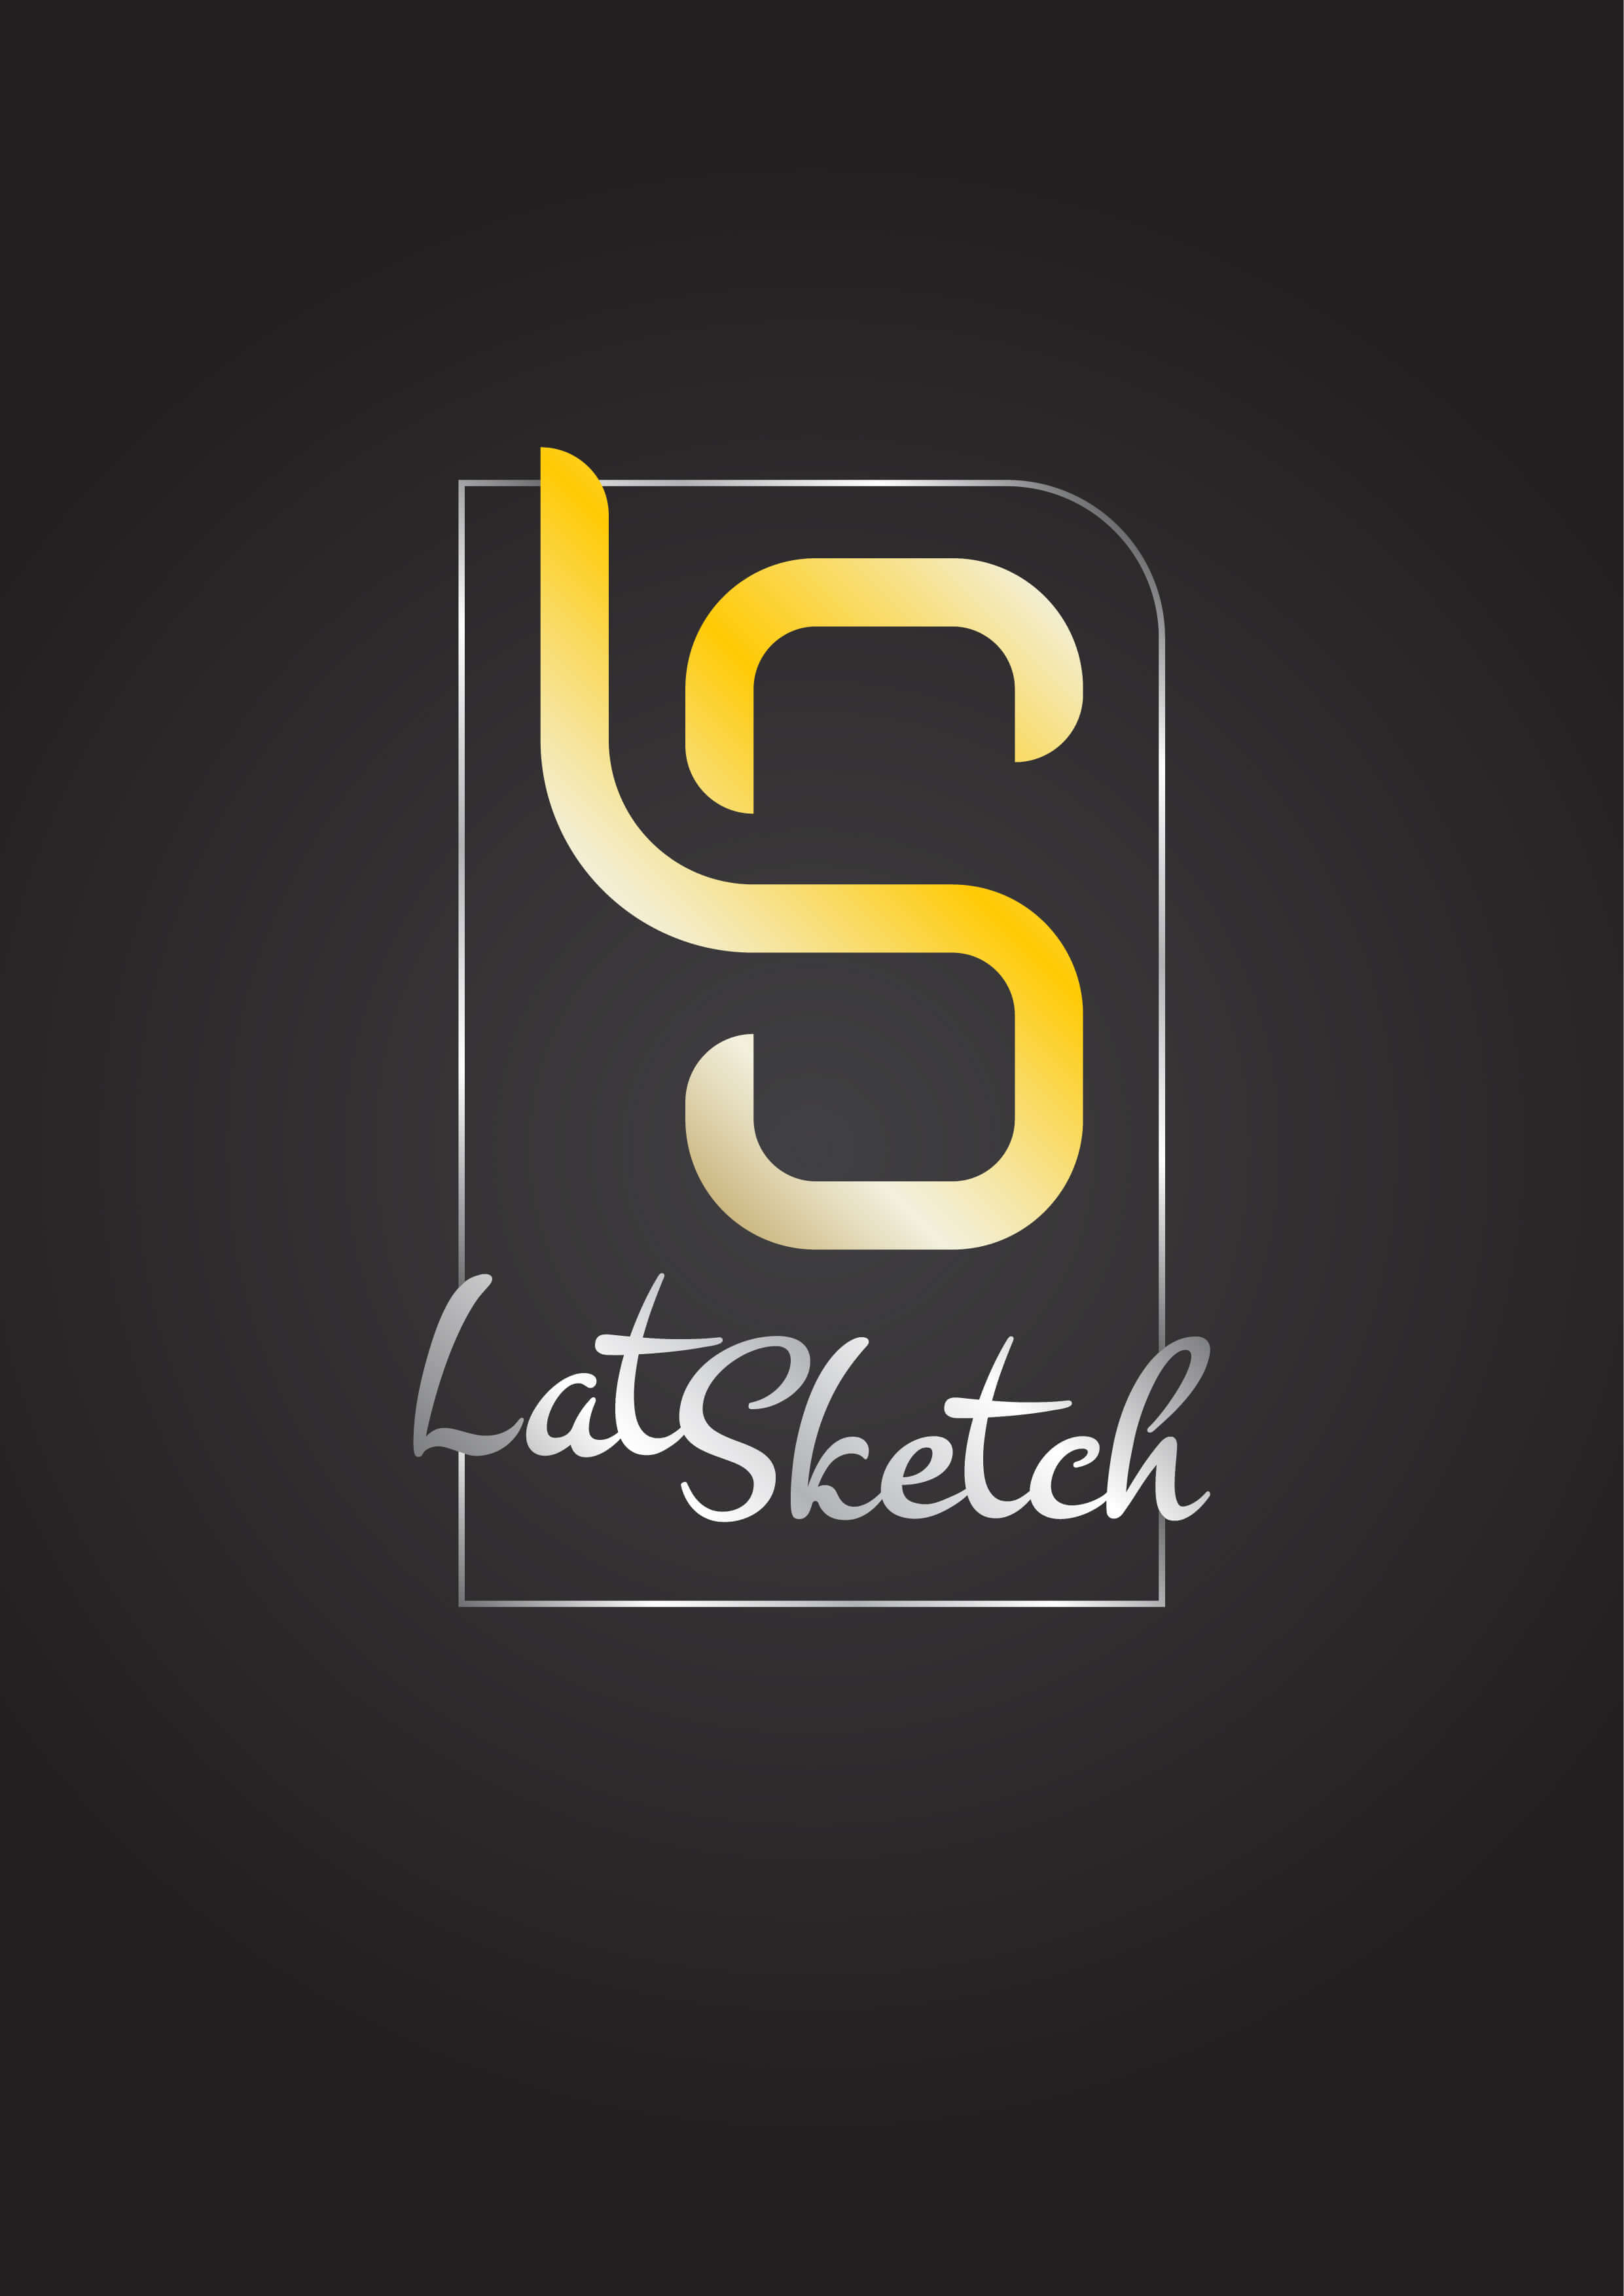 Company logo of Latsketch Ltd.